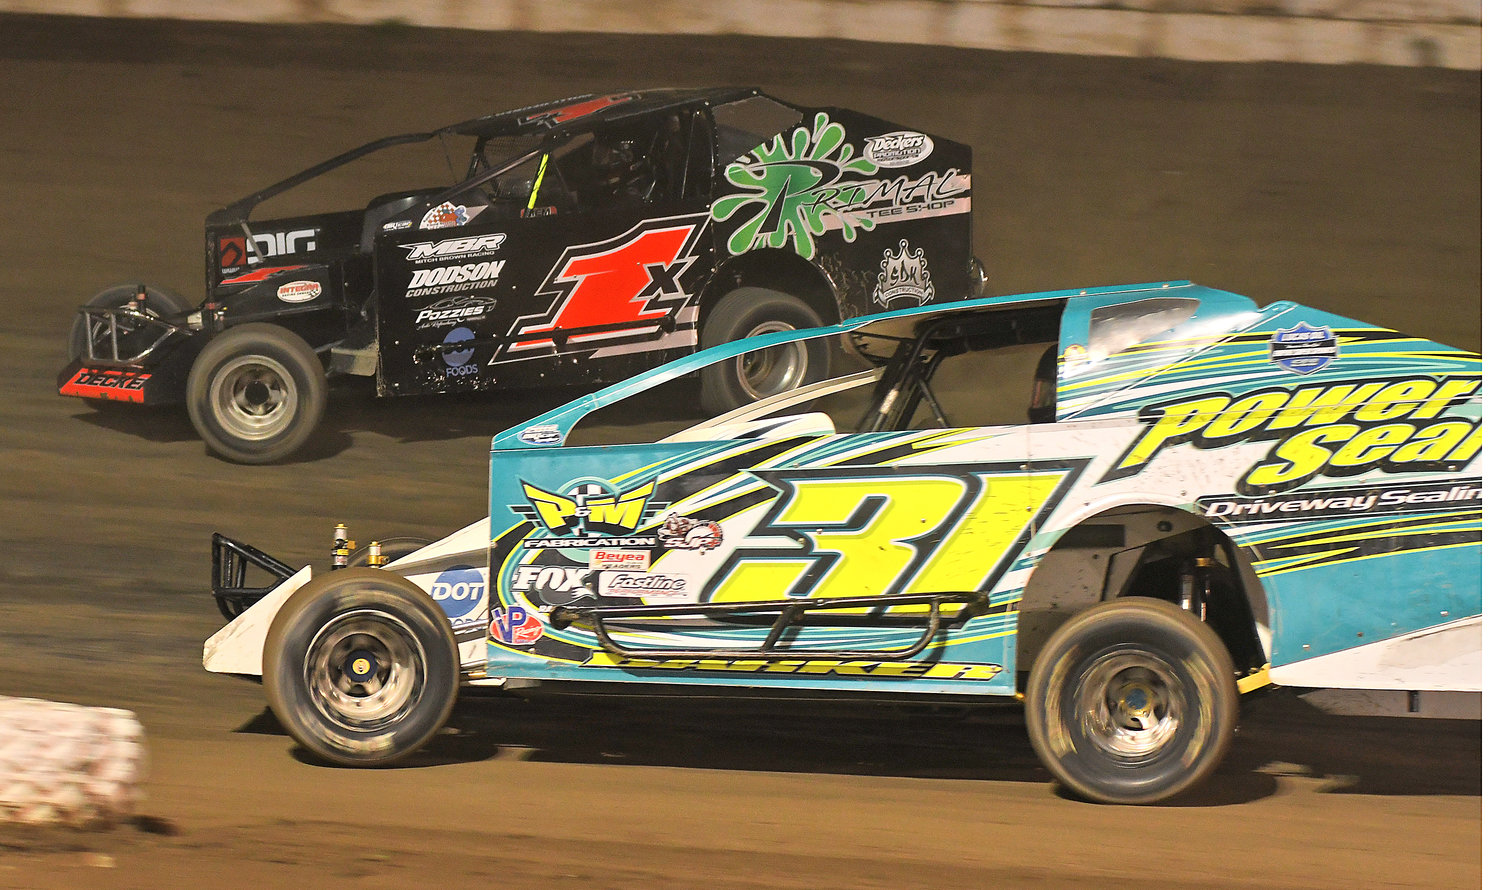 GOING FORWARD — Willy Decker Jr., No. 1x, and Corey Barker, No. 31, race in turn two at Fulton Speedway last Saturday night. Decker's finish of fourth doesn't reflect the great run he had, but the strong performance has the Vernon driver looking forward to the new season.